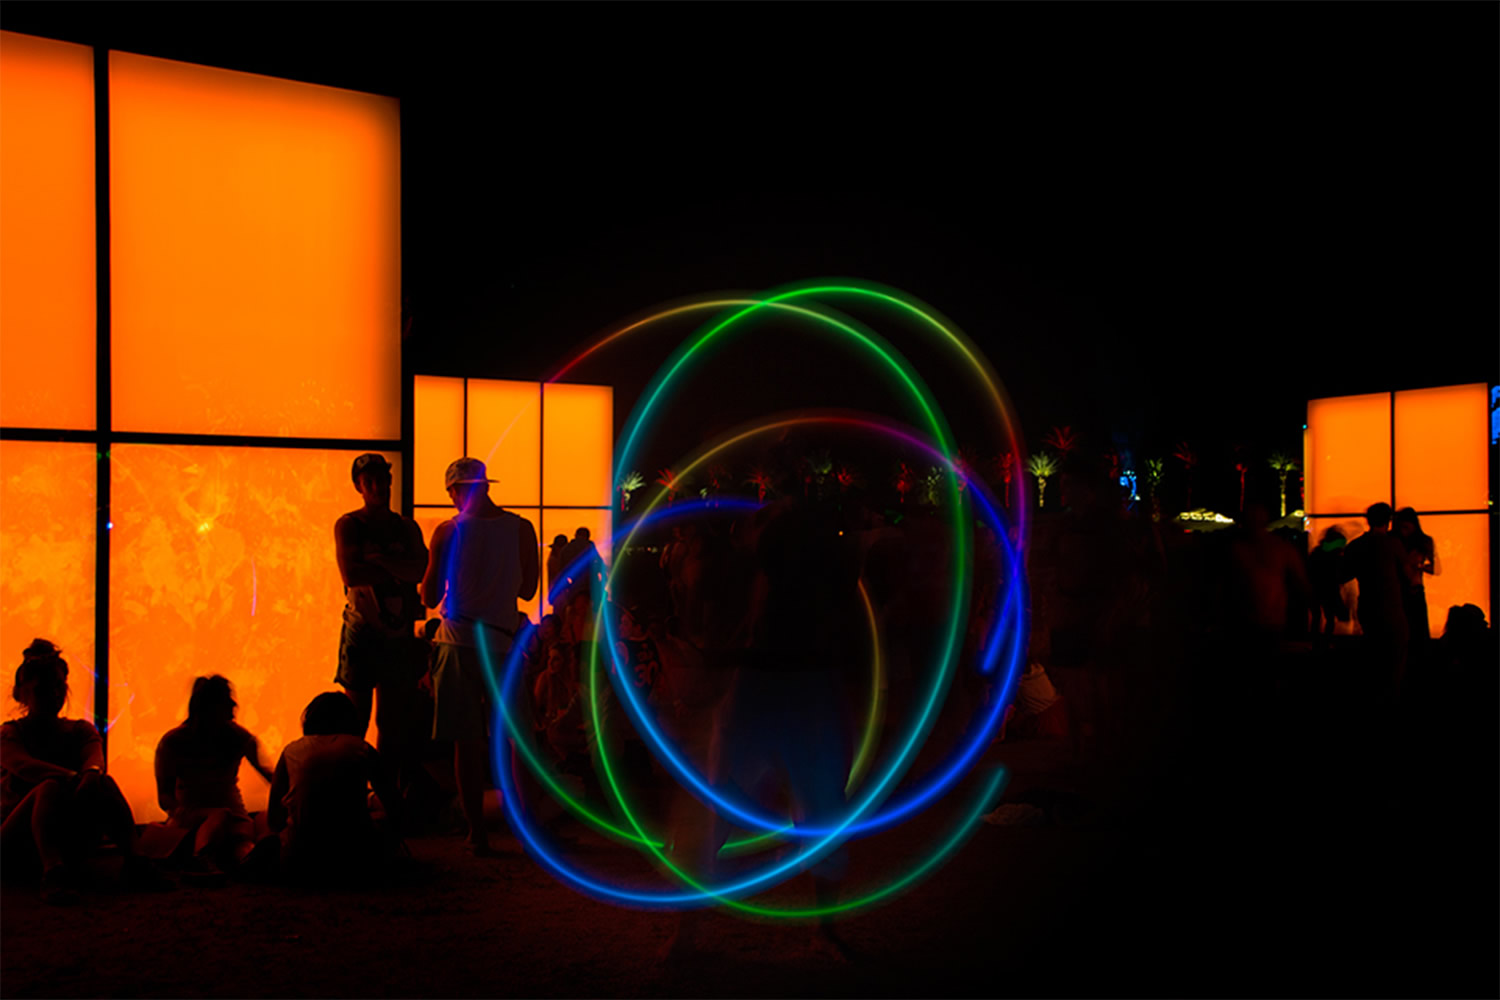 light painting circles and orange blocks. art installation by phillip k smith